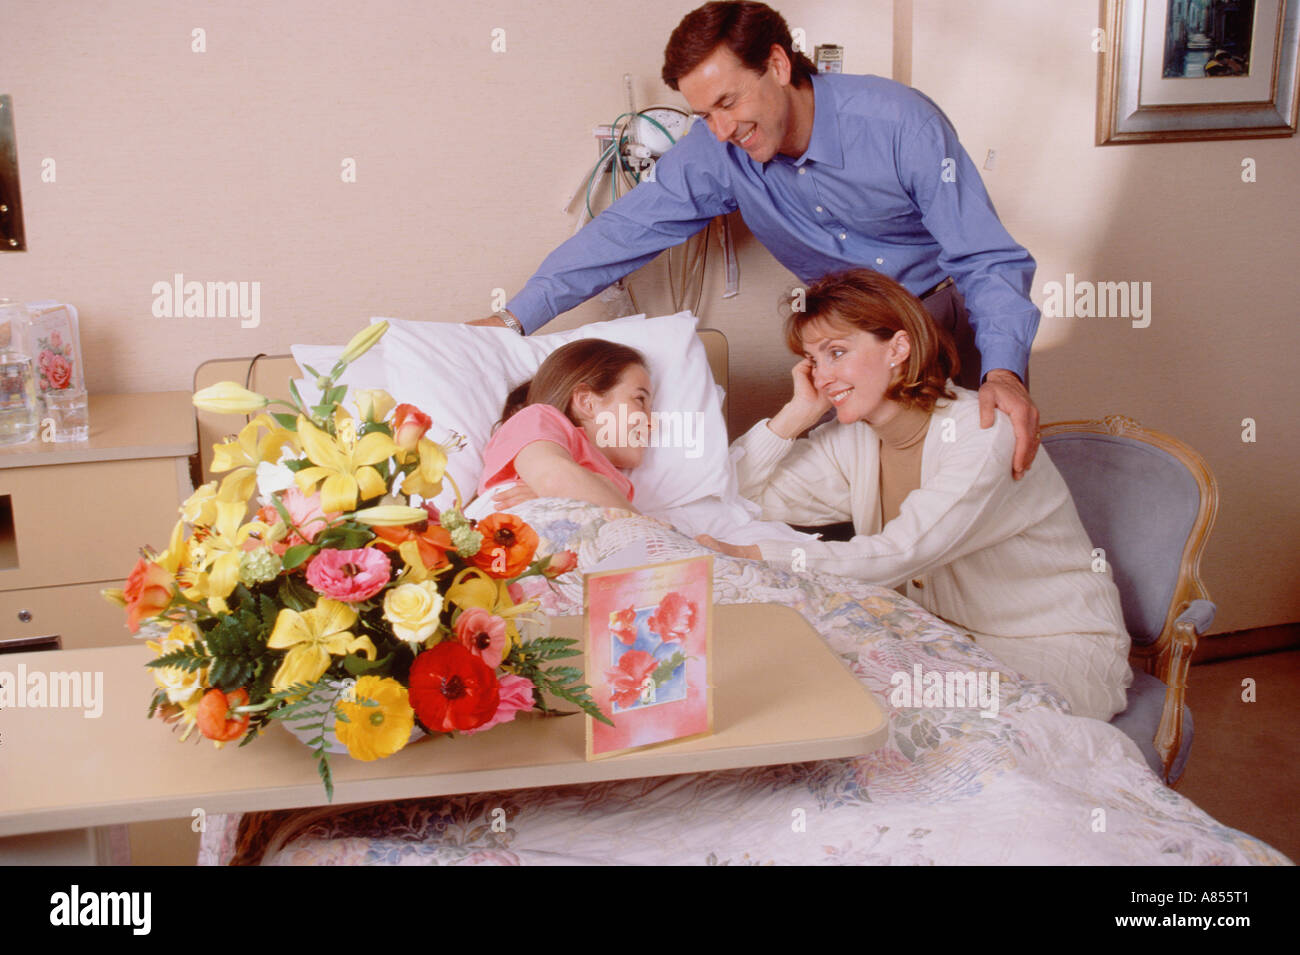 Family visiting their girl child in hospital. - Stock Image